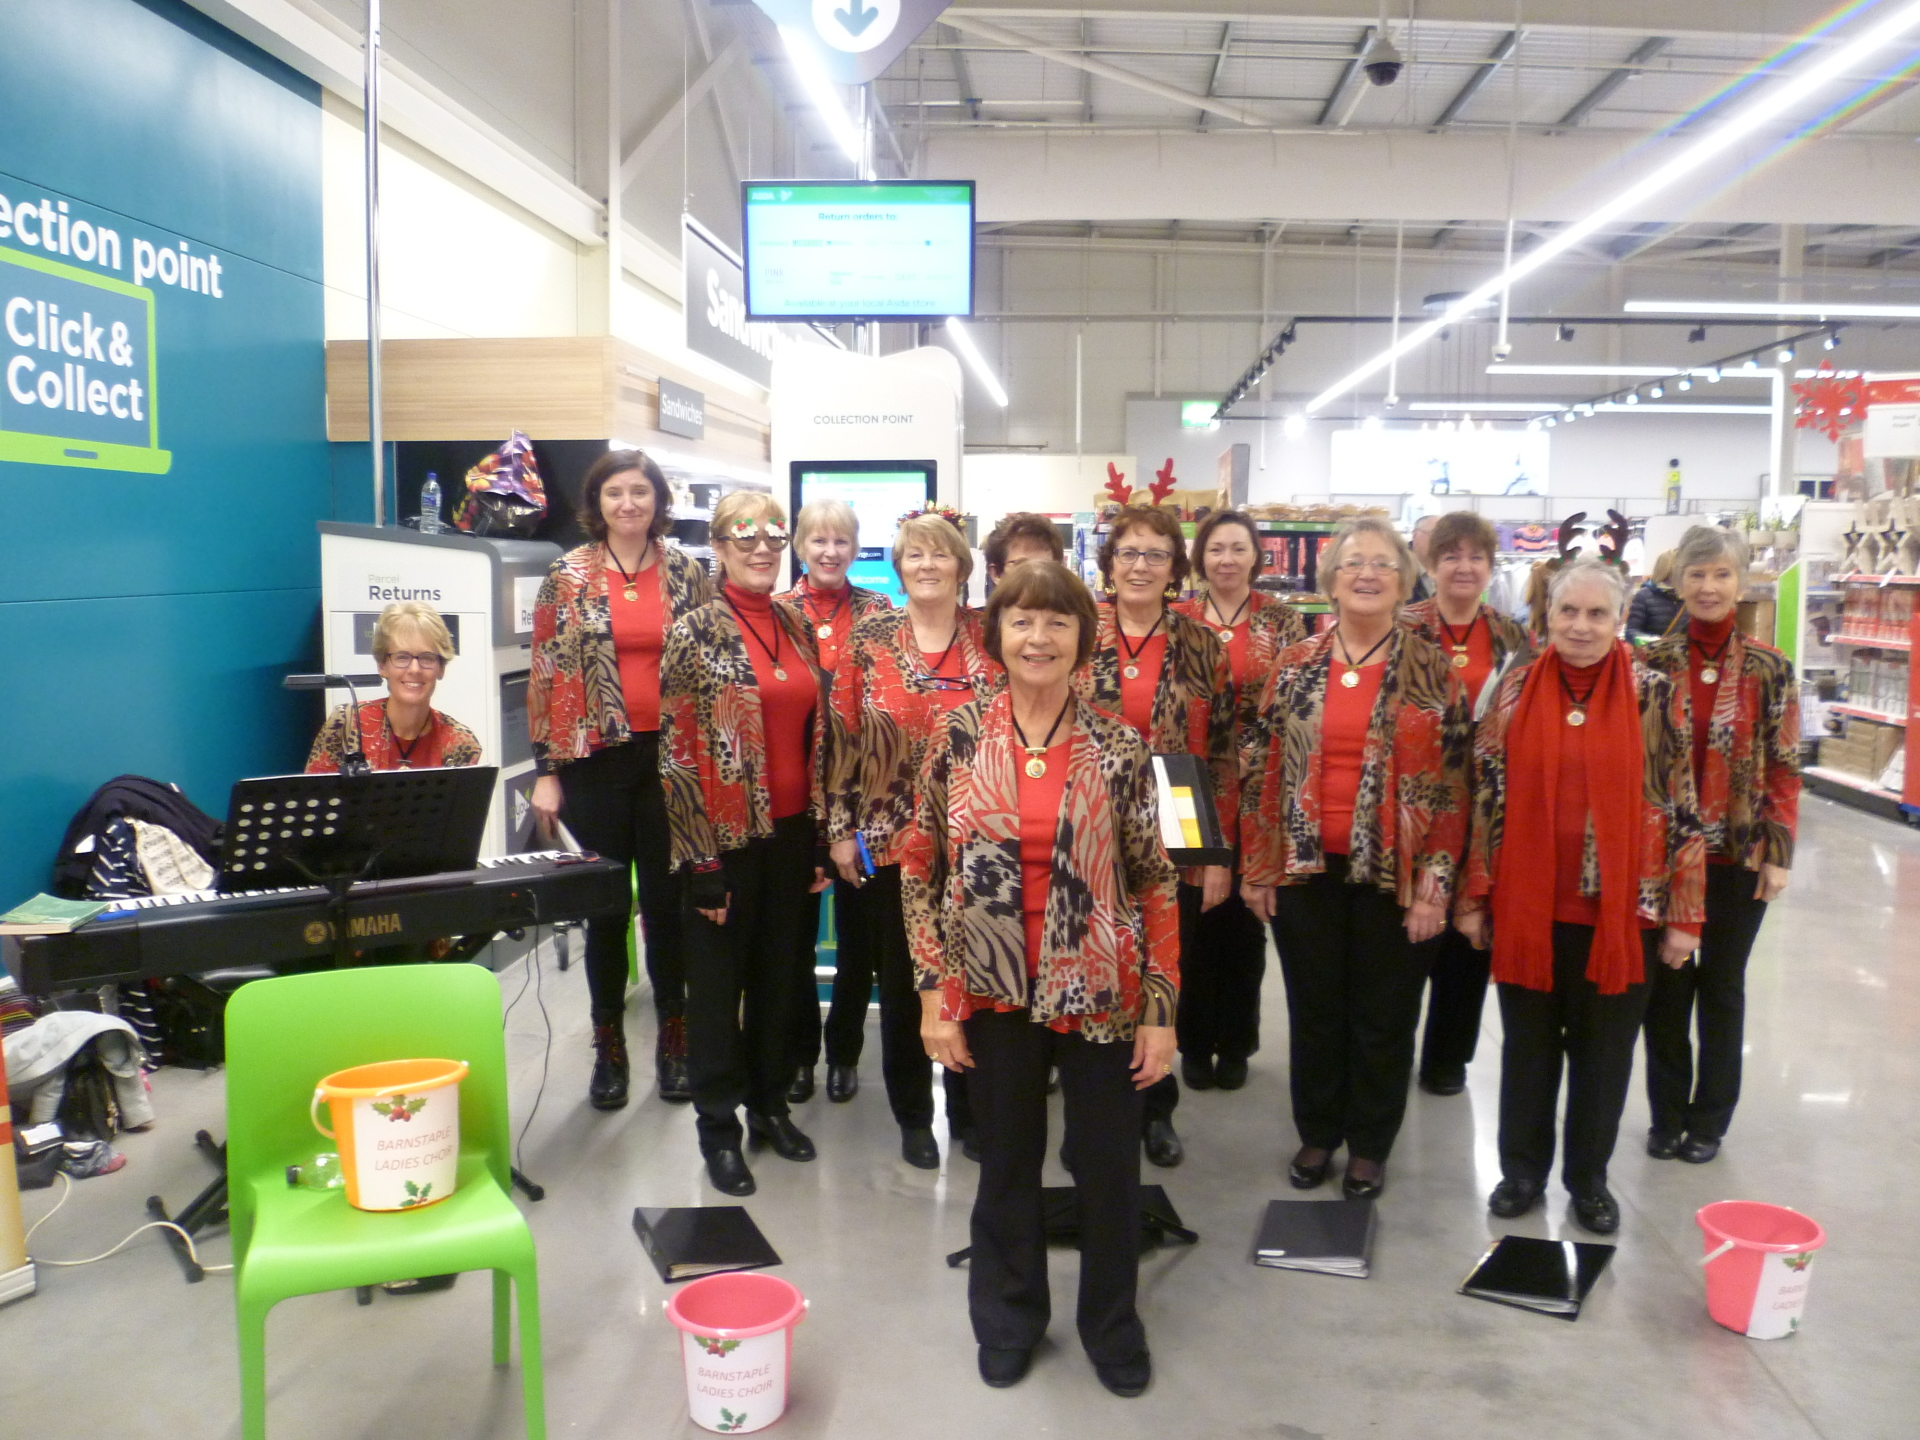 Carols at Asda